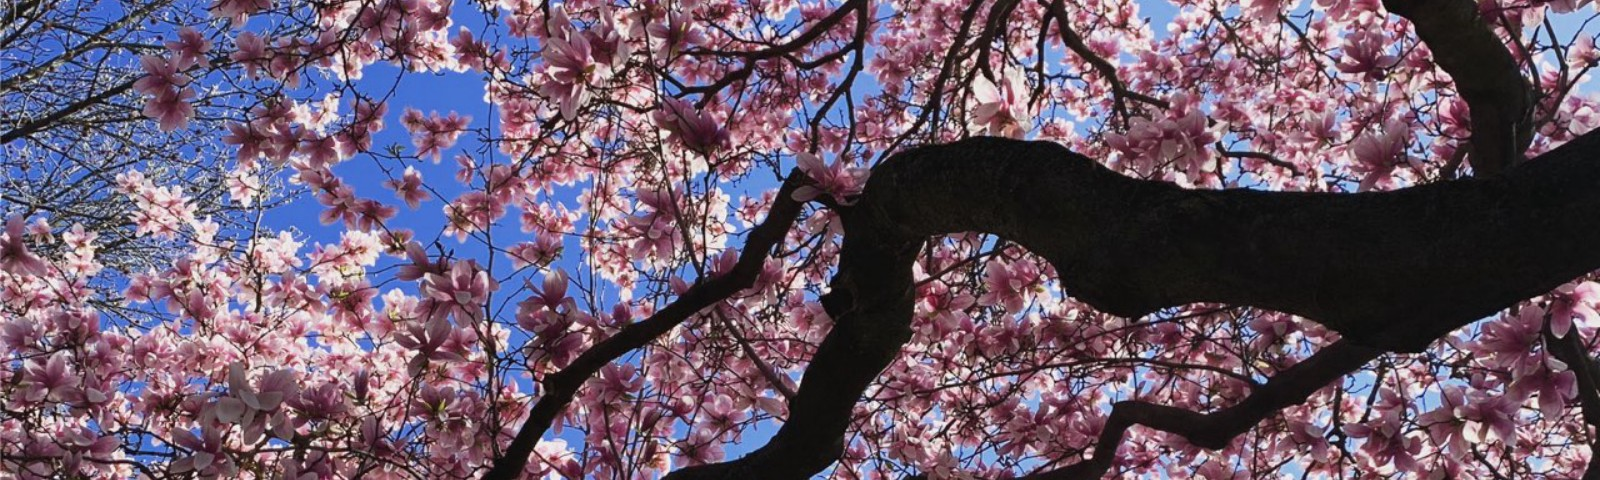 A blossoming tree